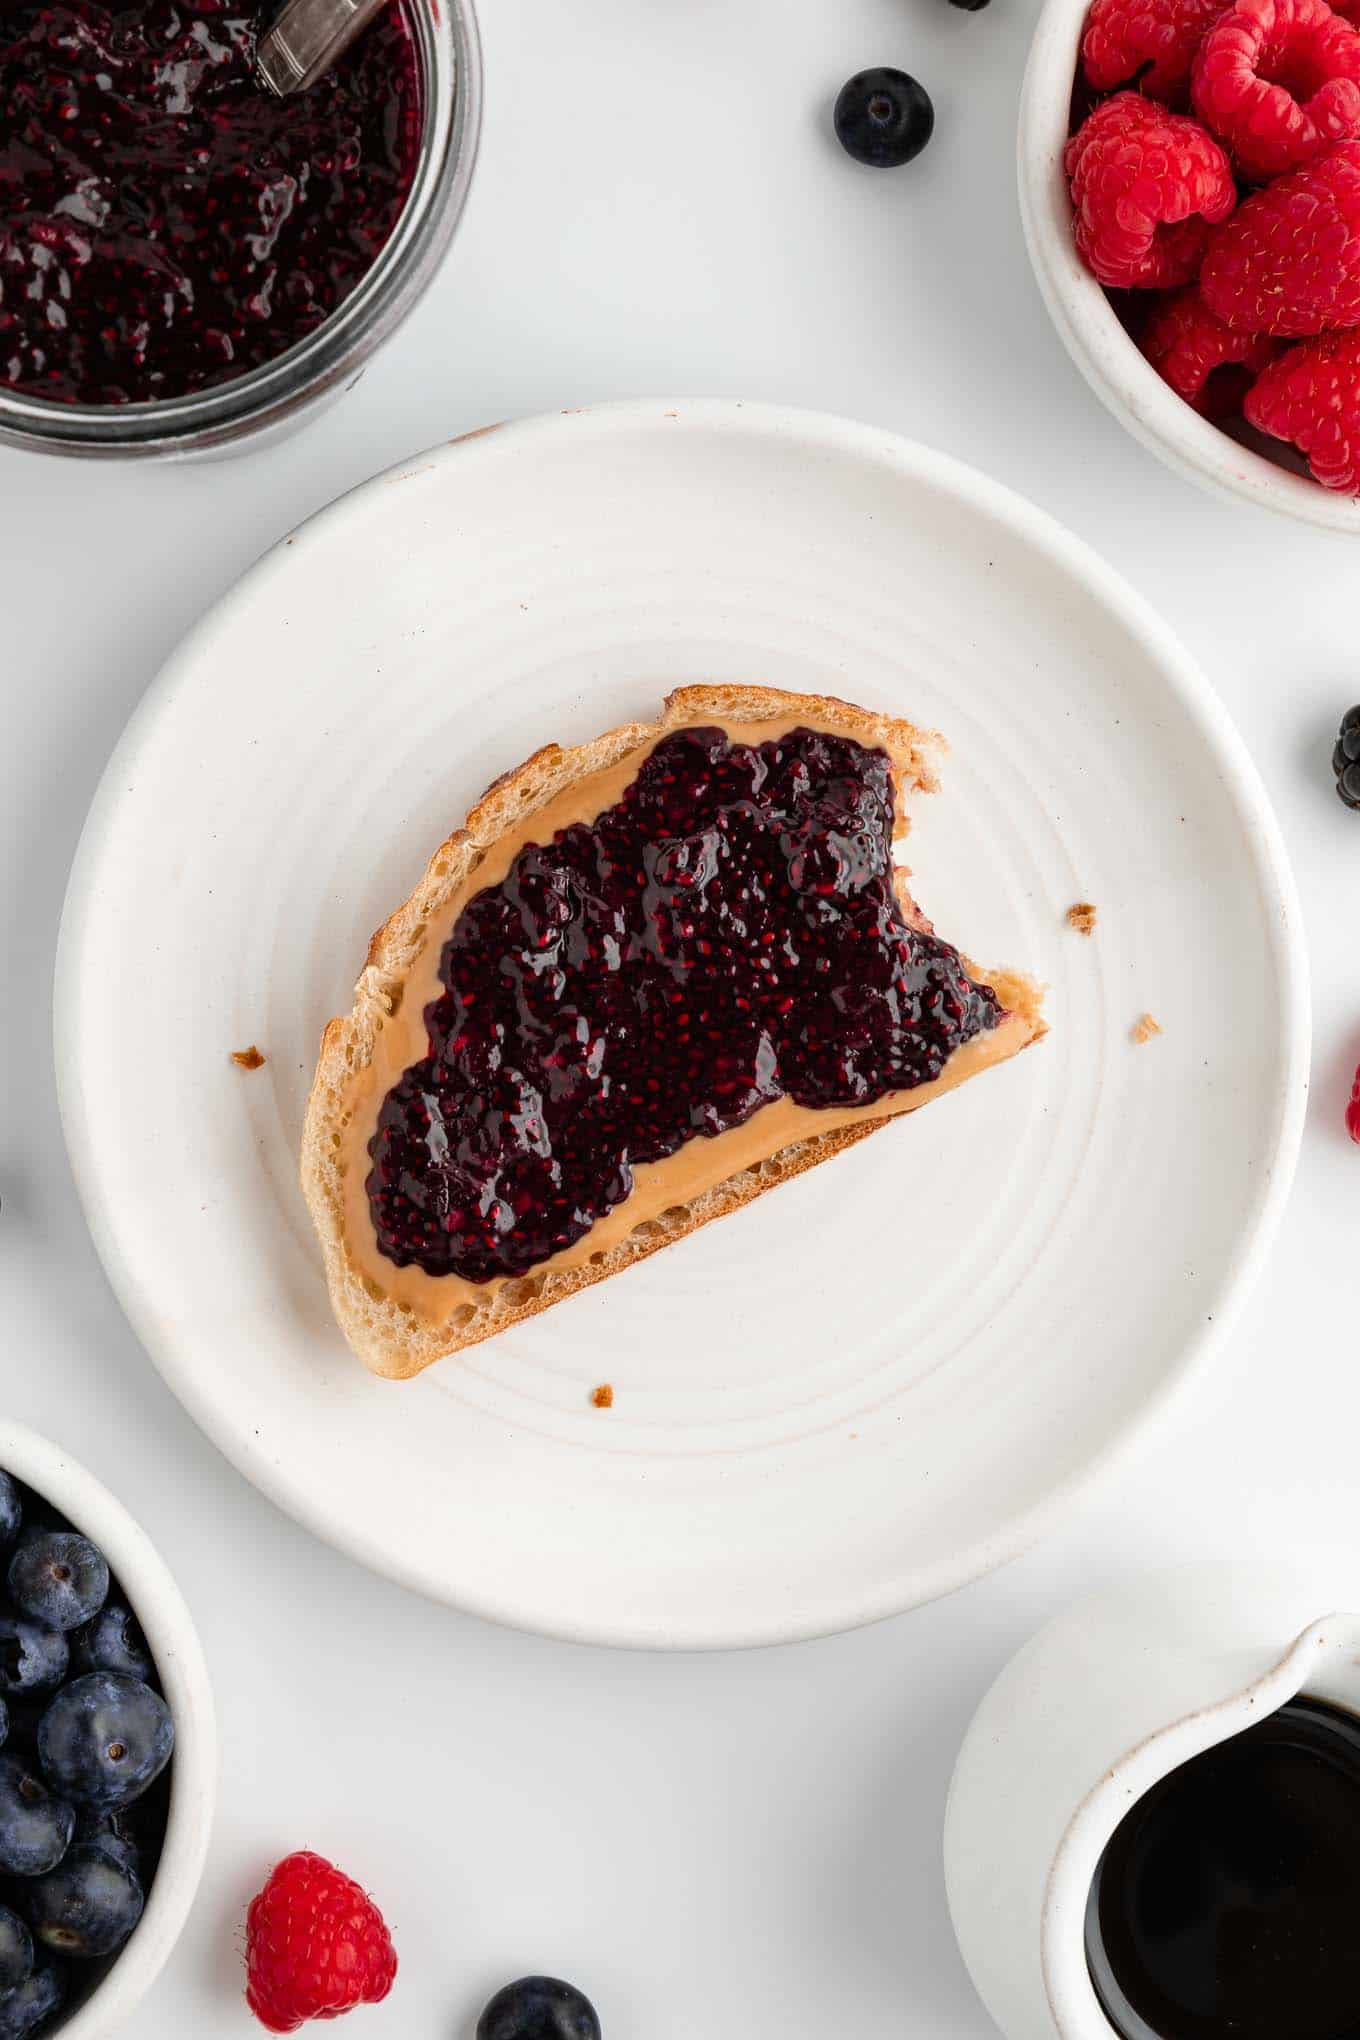 a partially eaten slice of peanut butter and berry chia jam toast on a white plate